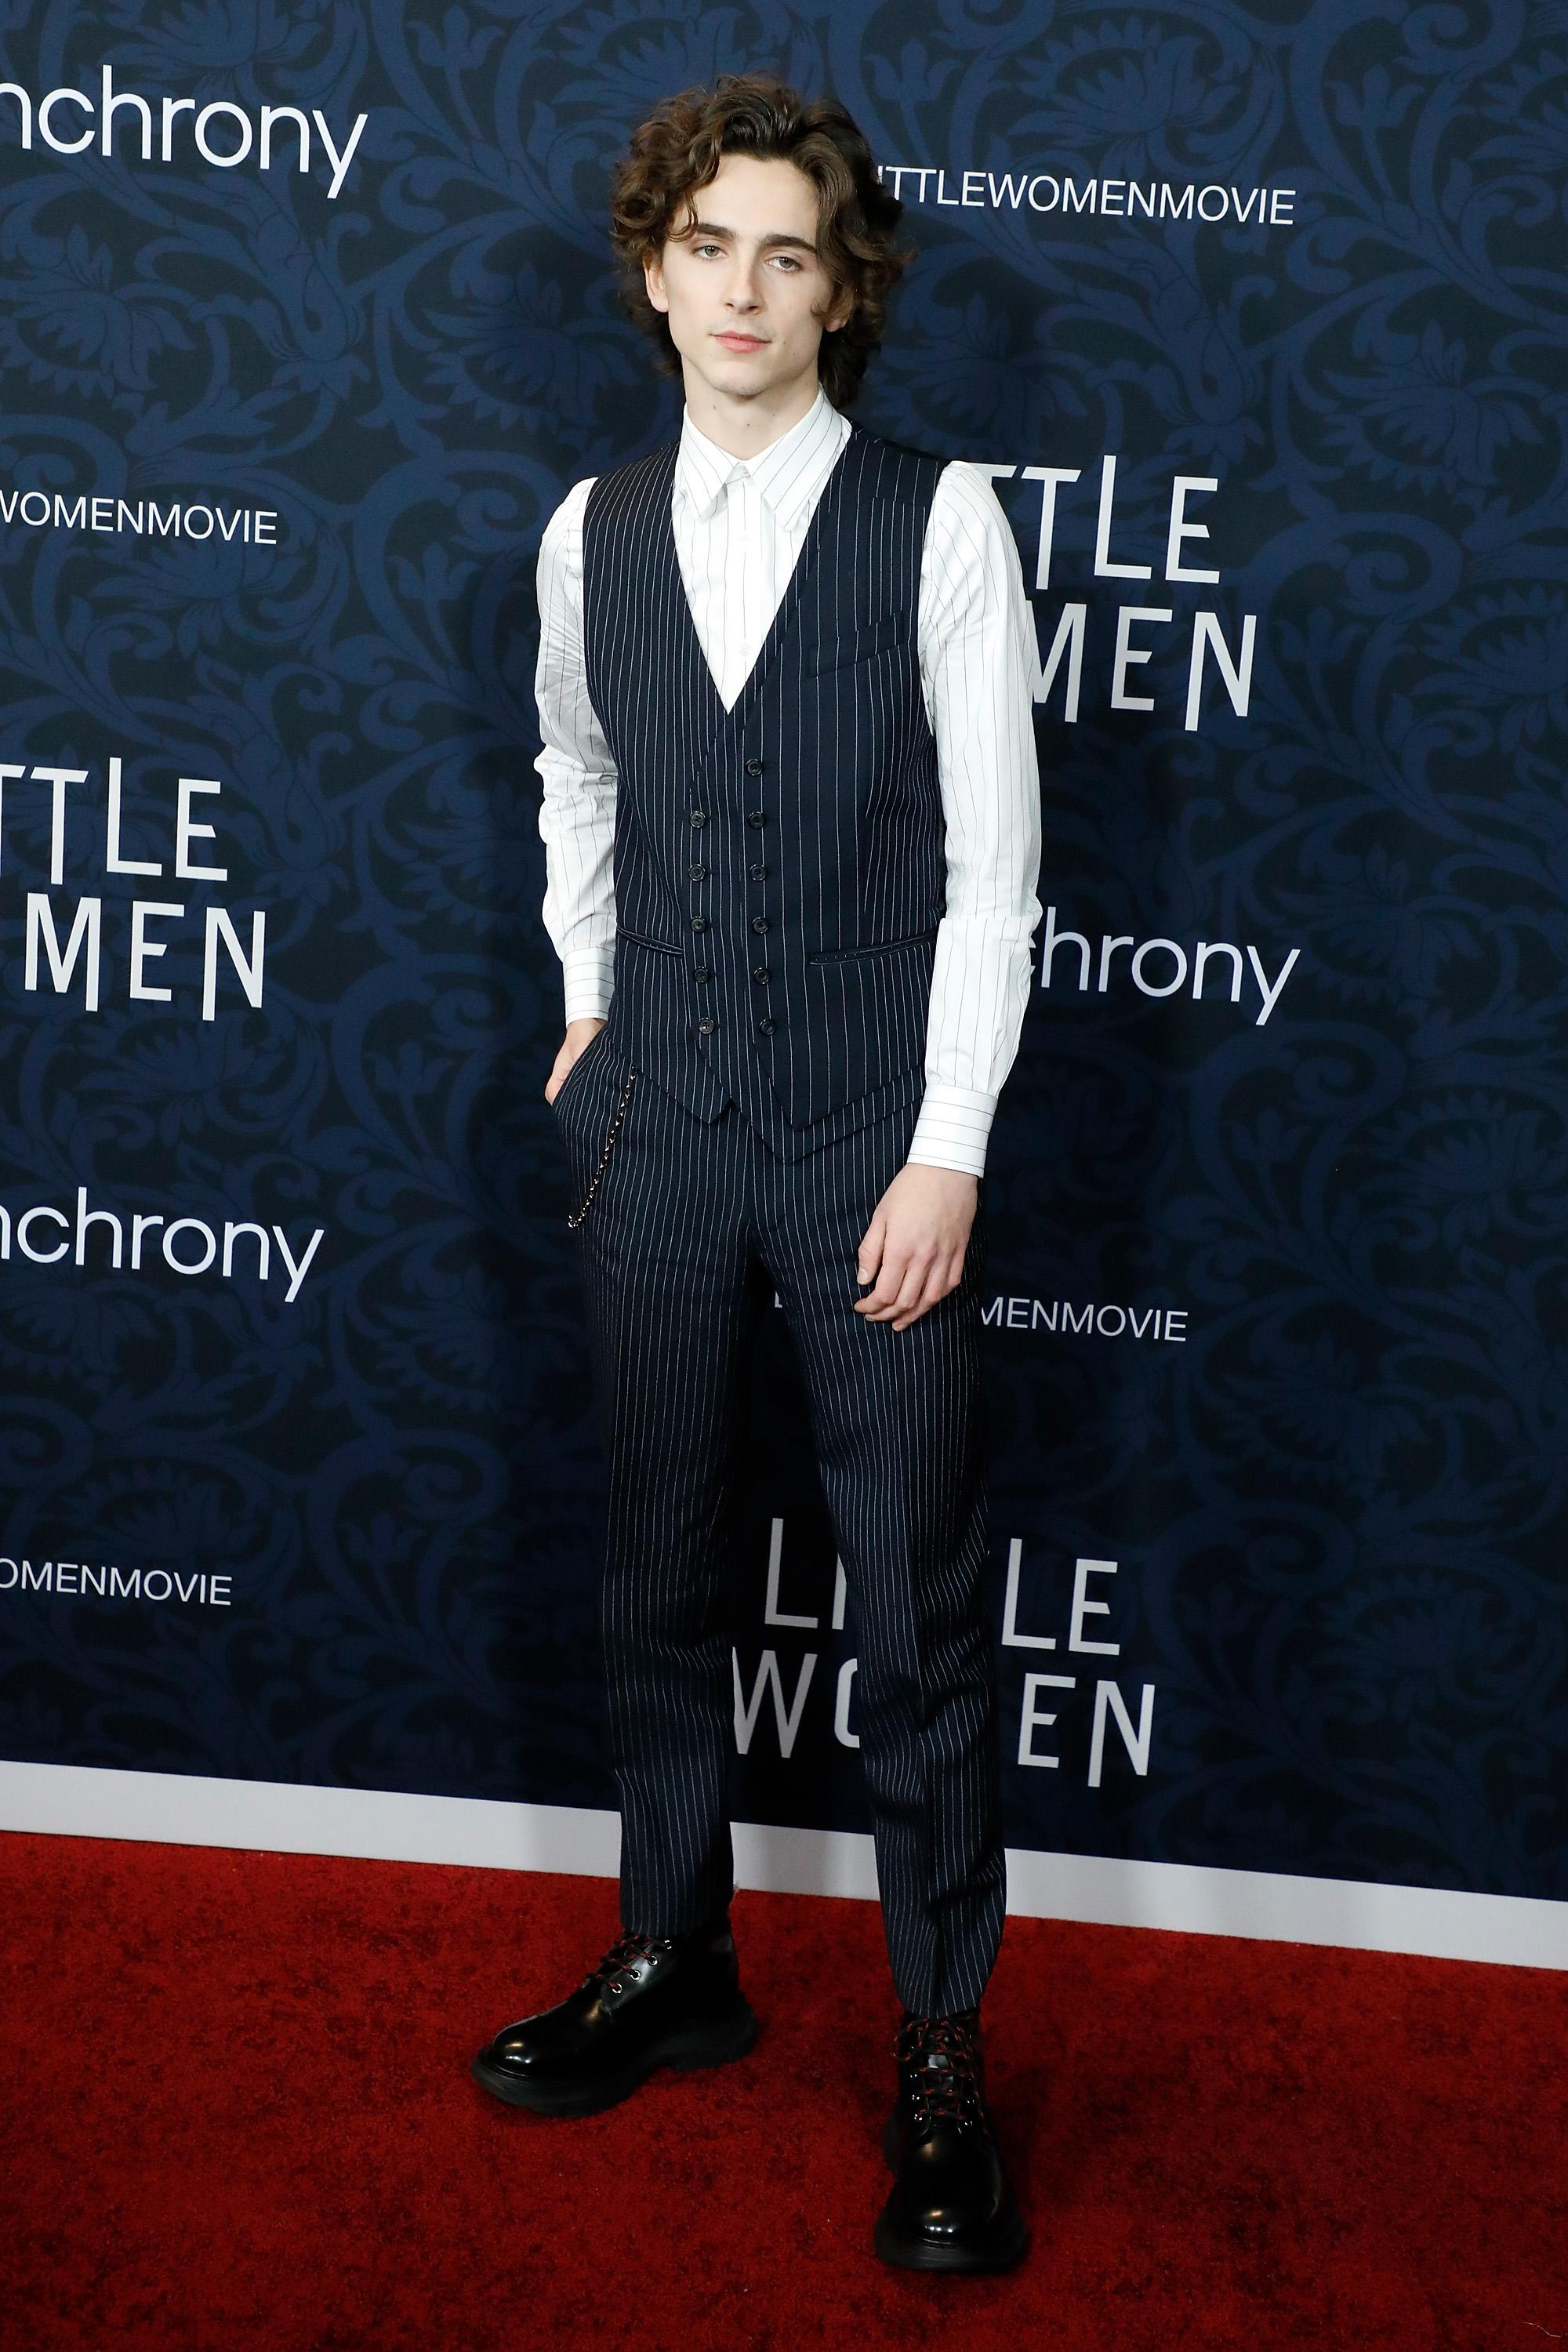 "NEW YORK, NEW YORK - DECEMBER 07: Timothee Chalamet attends the world premiere of ""Little Women"" at Museum of Modern Art on December 07, 2019 in New York City. (Photo by Taylor Hill/WireImage,)"